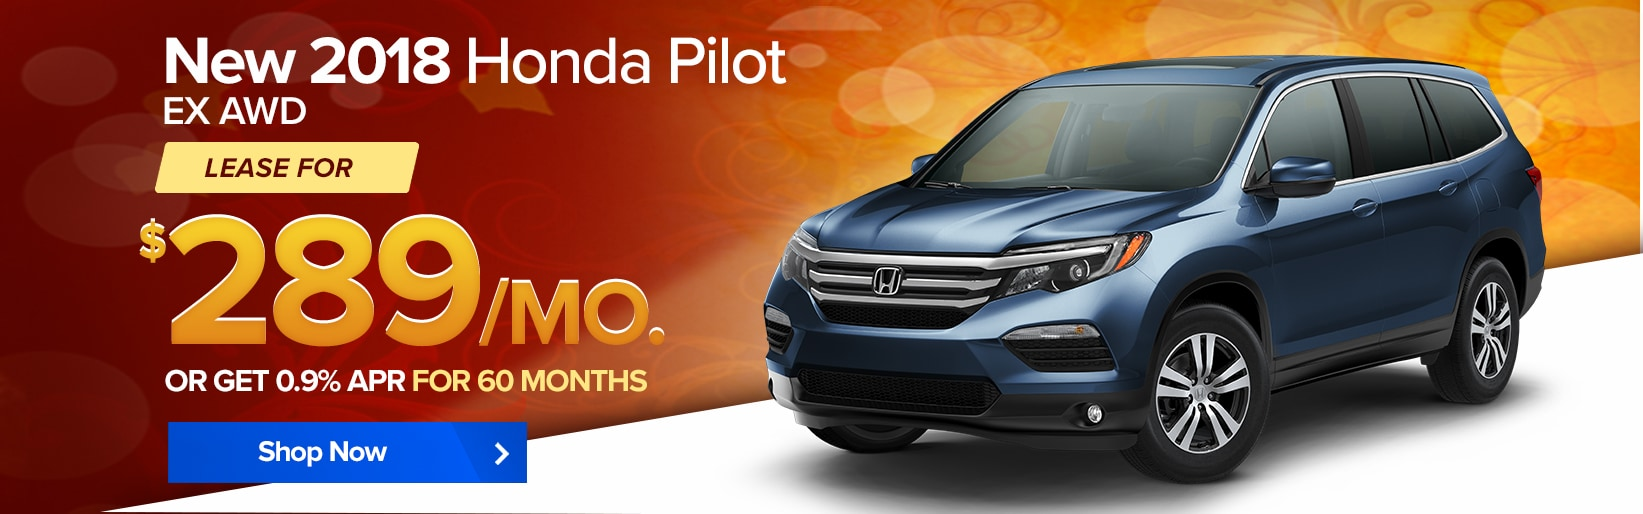 Honda crv leases in ma 2016 honda crv lease deals ny nj ct pa ma honda odyssey lease deals ny hp desktop computer coupon codes fandeluxe Gallery